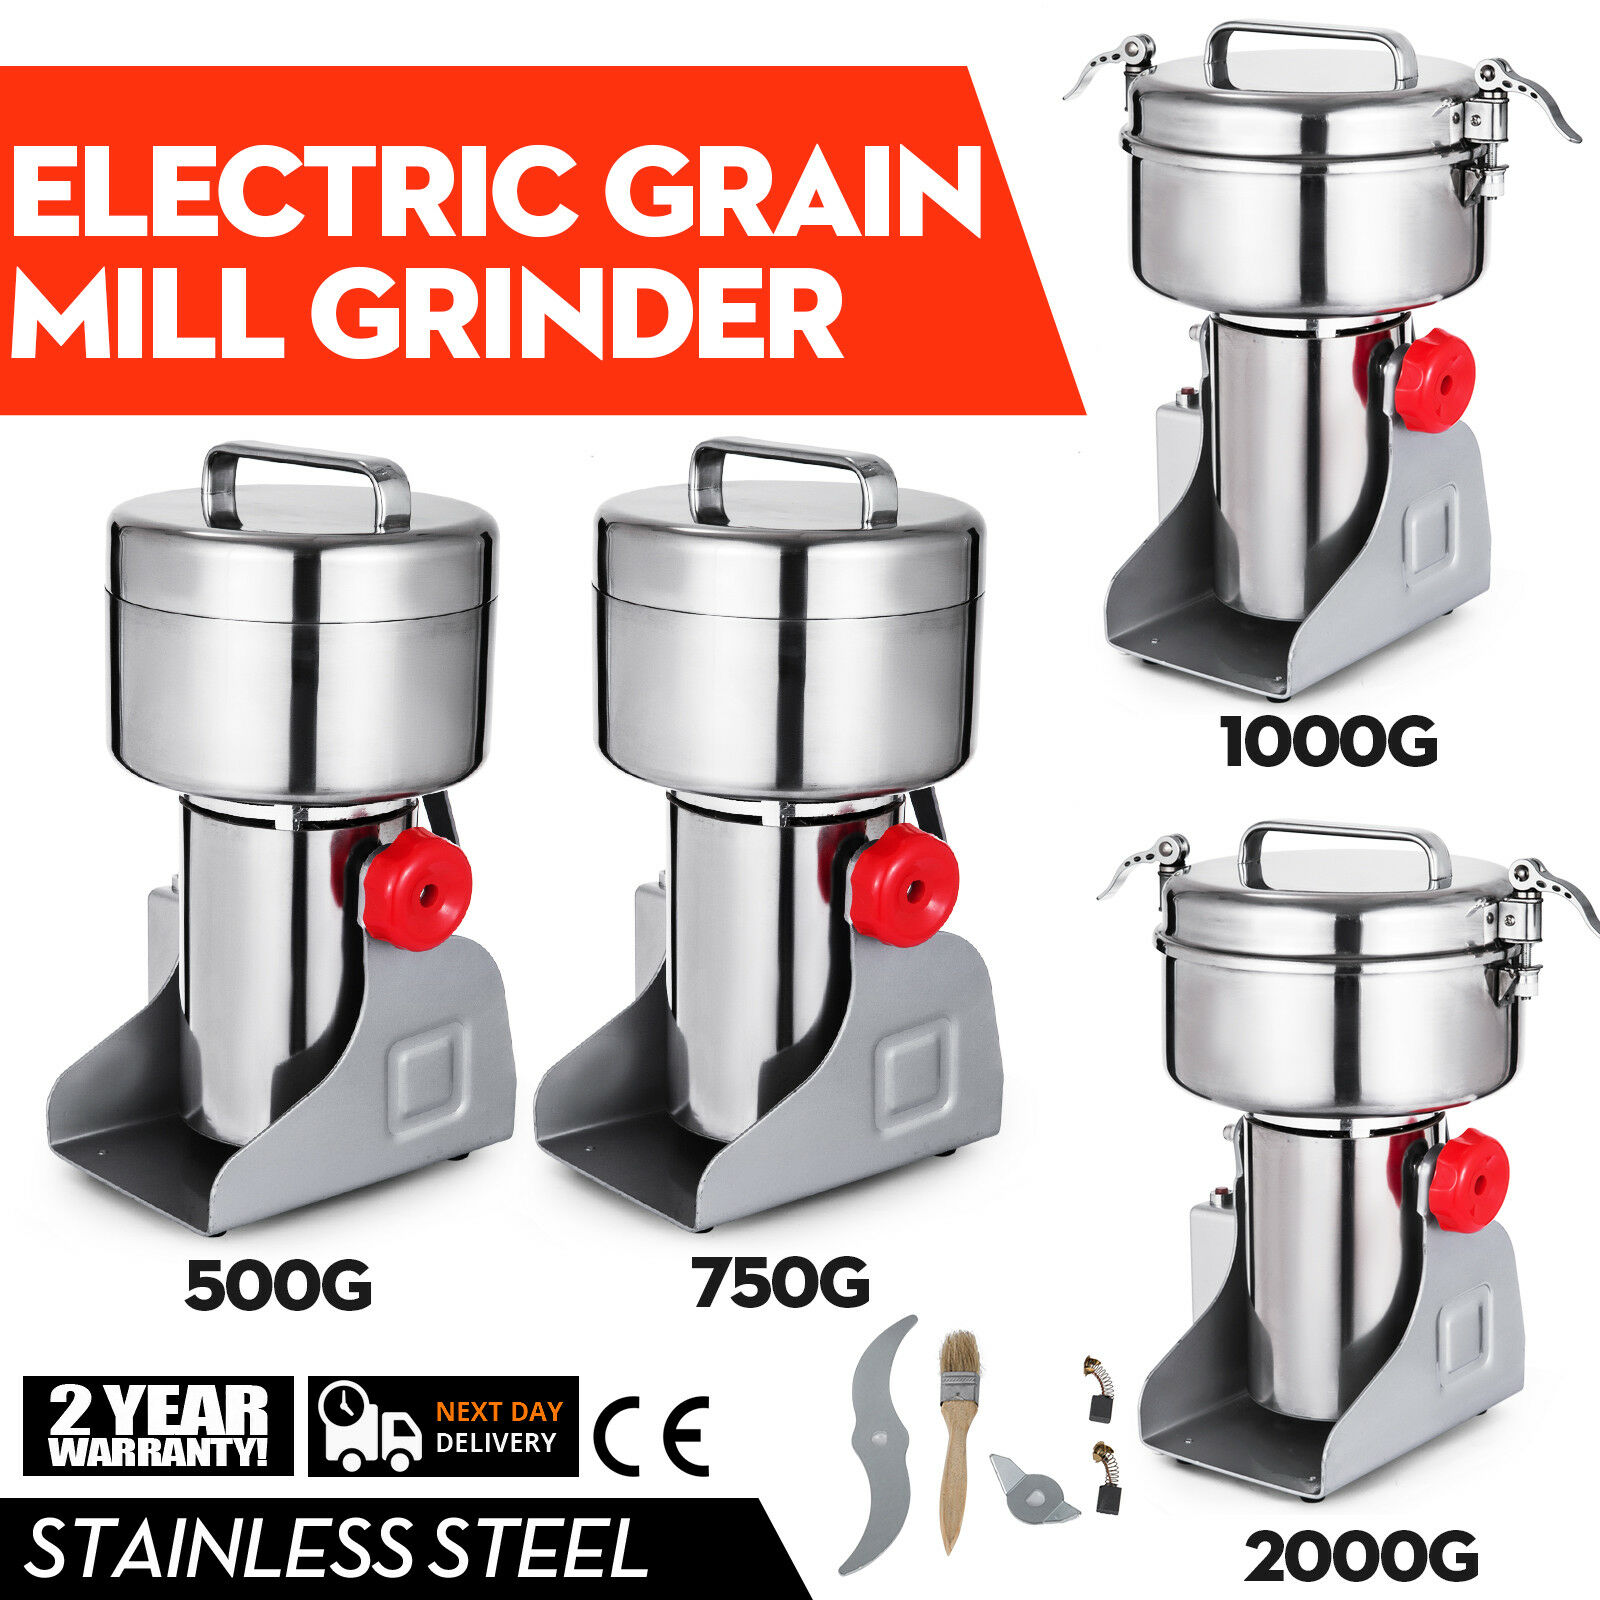 3002000g Electric Herb Grain Mill Grinder 36000R MIN stainless steel Coffee